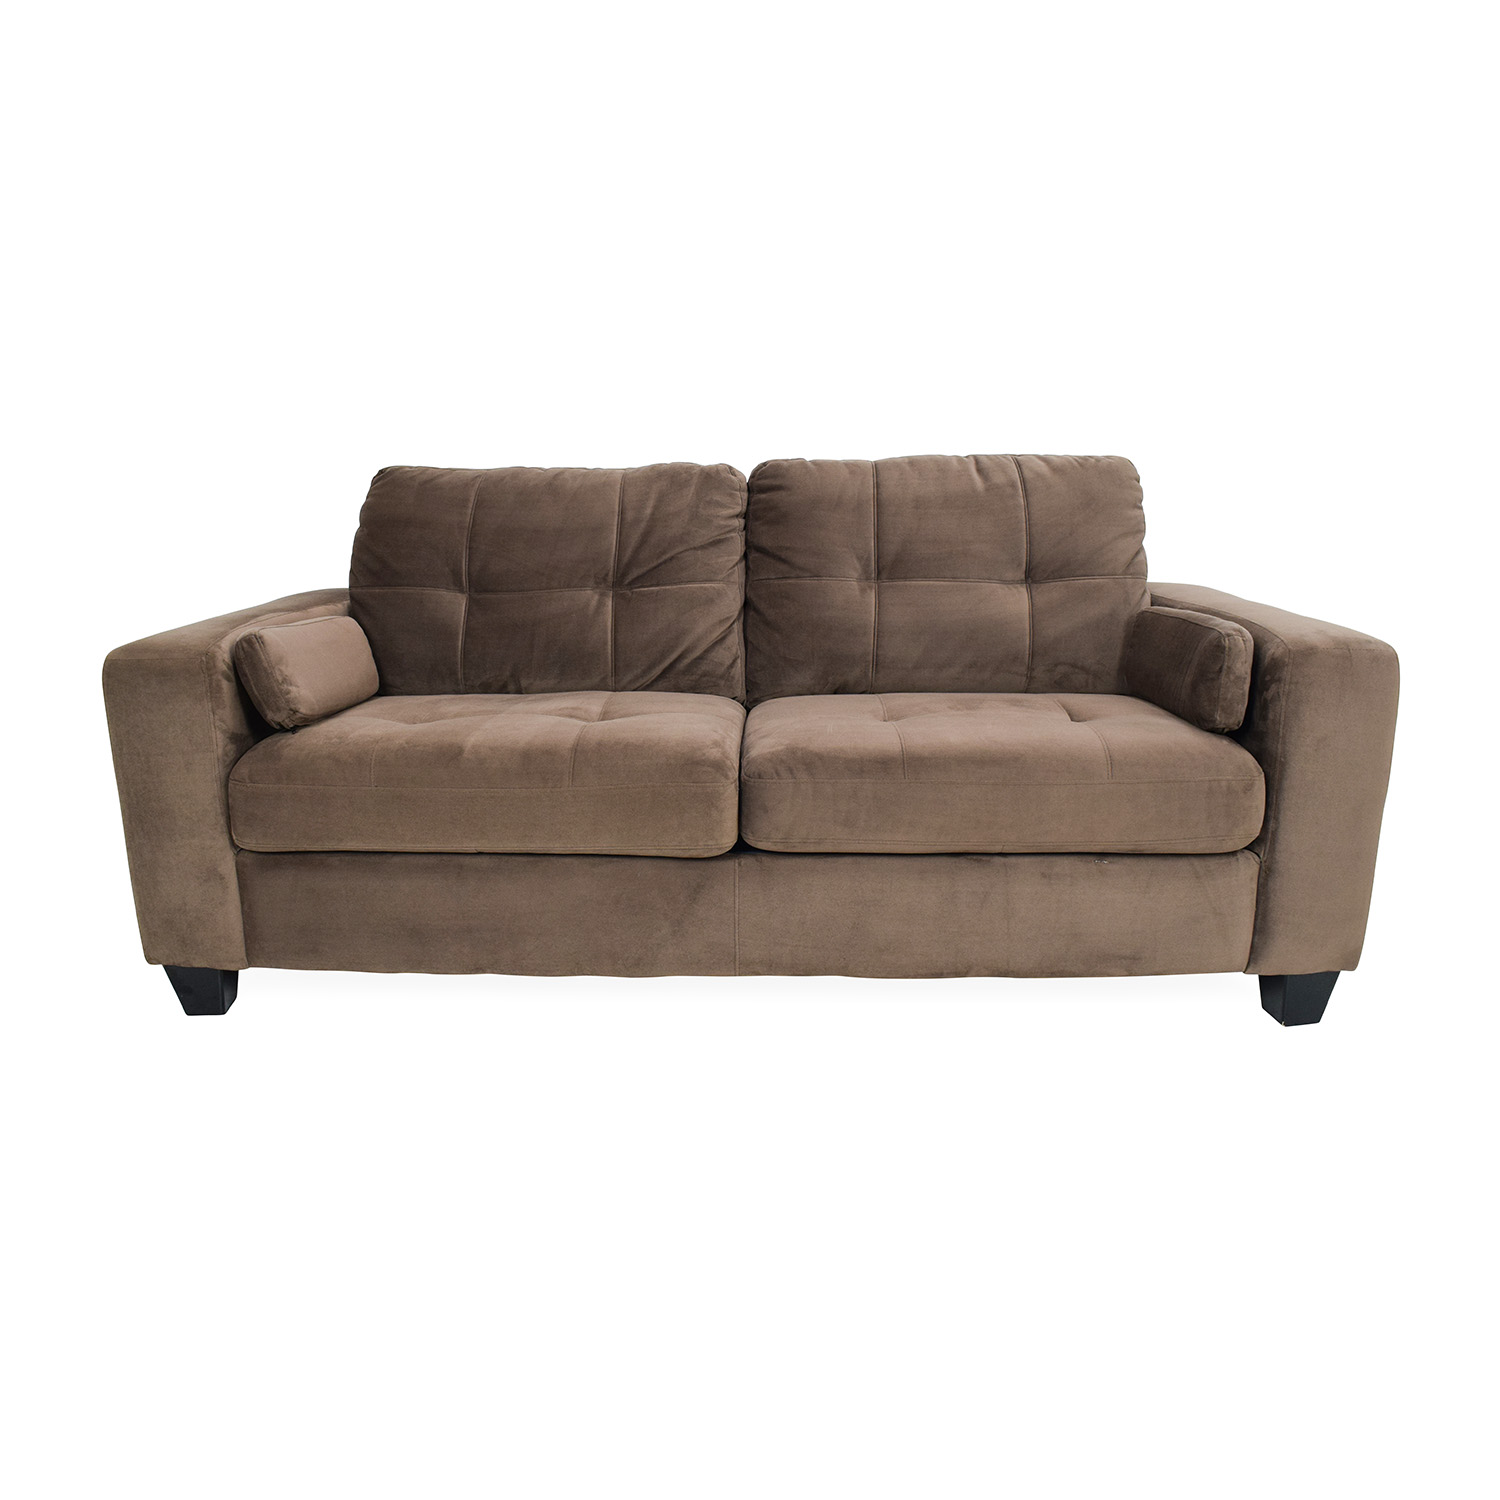 Full Size Sofa Bed Ikea Sofa Sleeper Sectional Sofa Bed